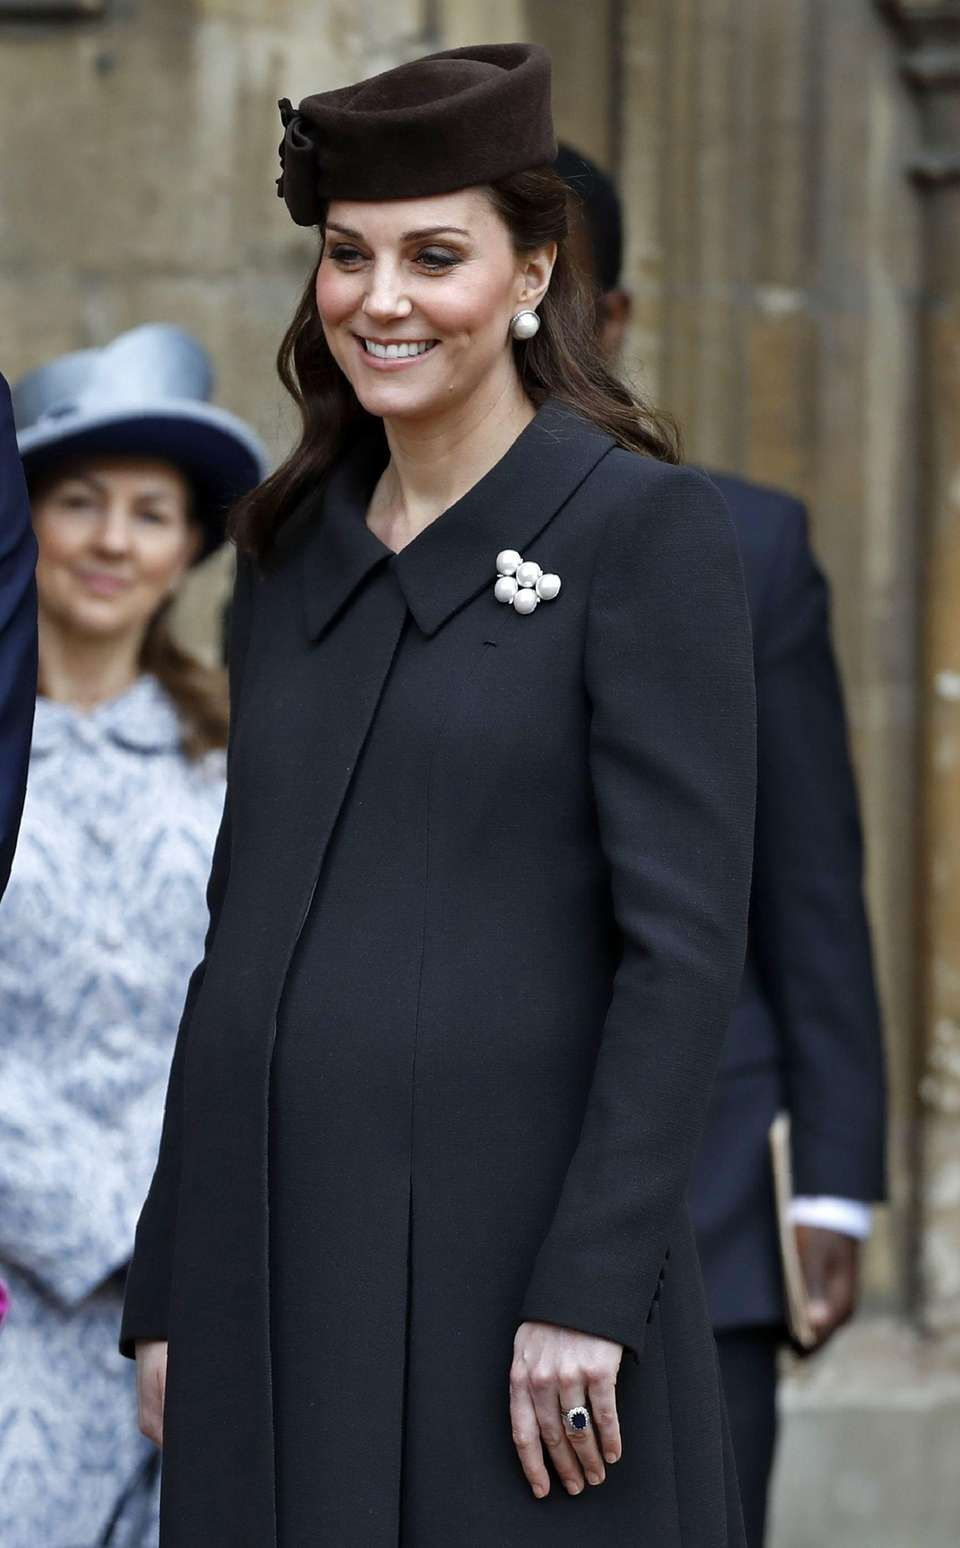 Britain's Catherine, Duchess of Cambridge, leaves after attending